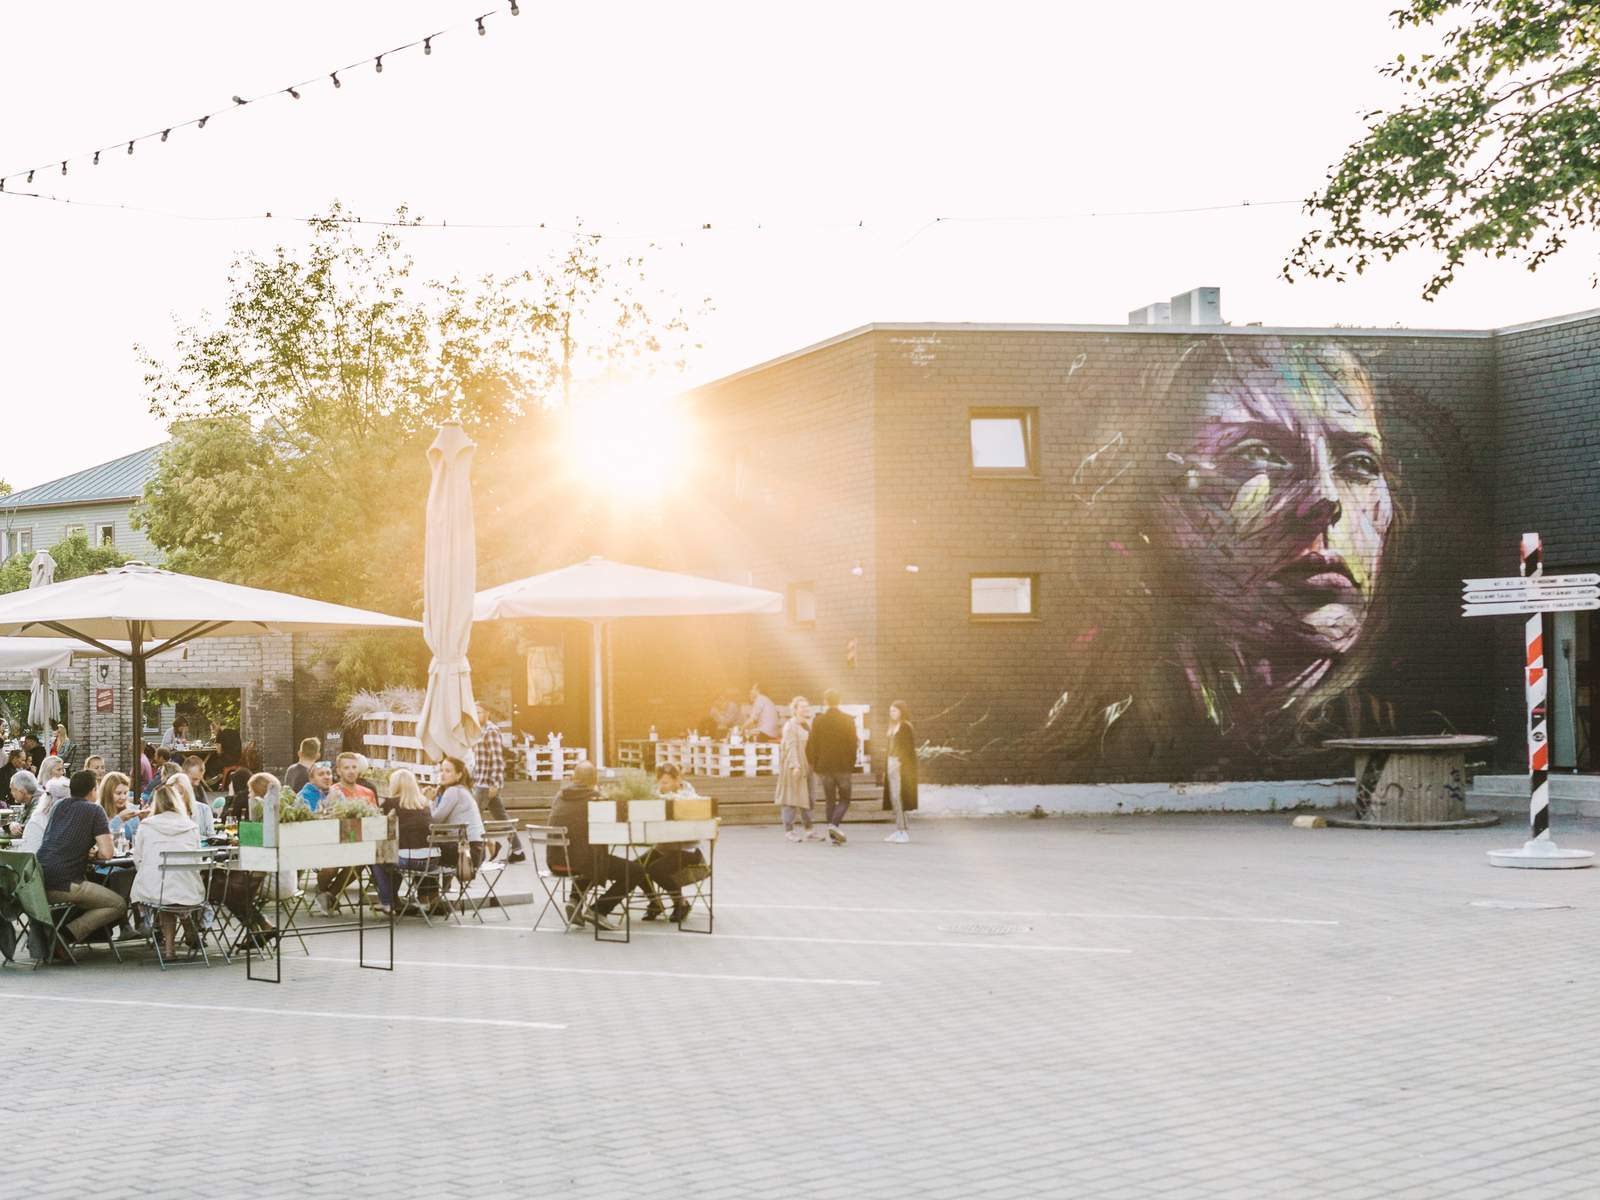 A mural by Hopare in Telliskivi Creative City in Tallinn, Estonia Photo: Rasmus Jurkatam / EAS